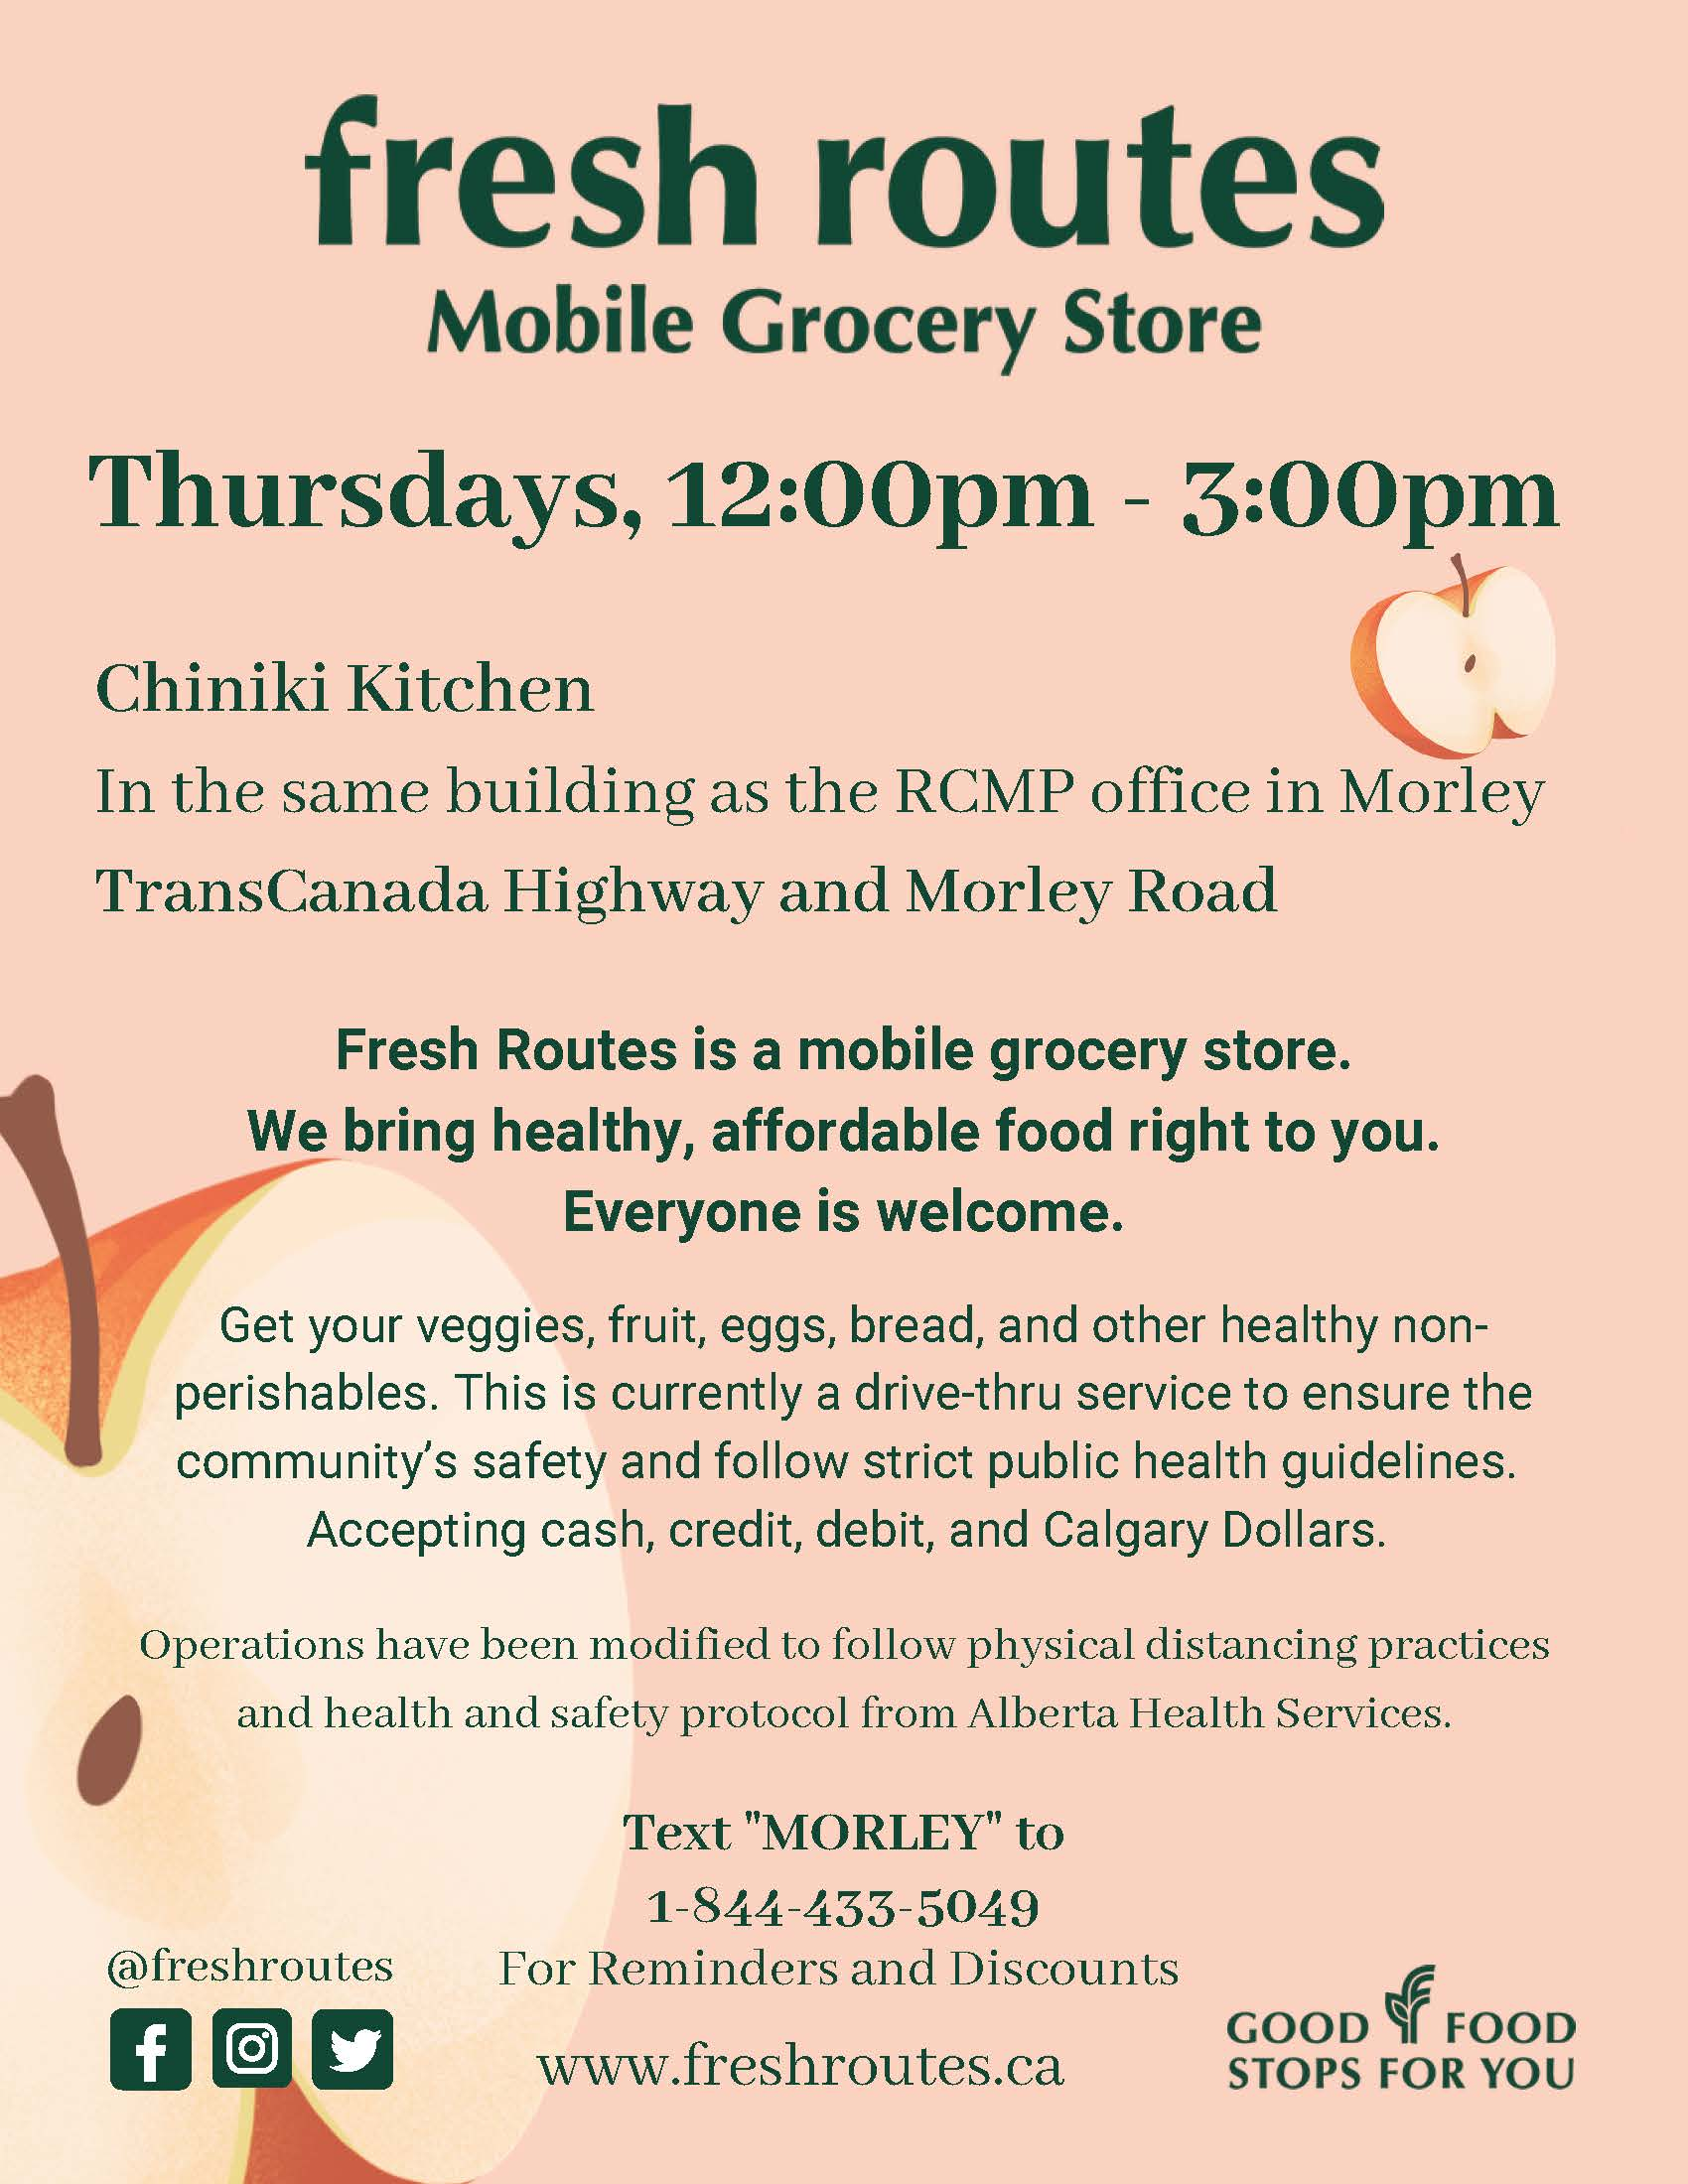 Fresh Routes Mobile Grocery Store